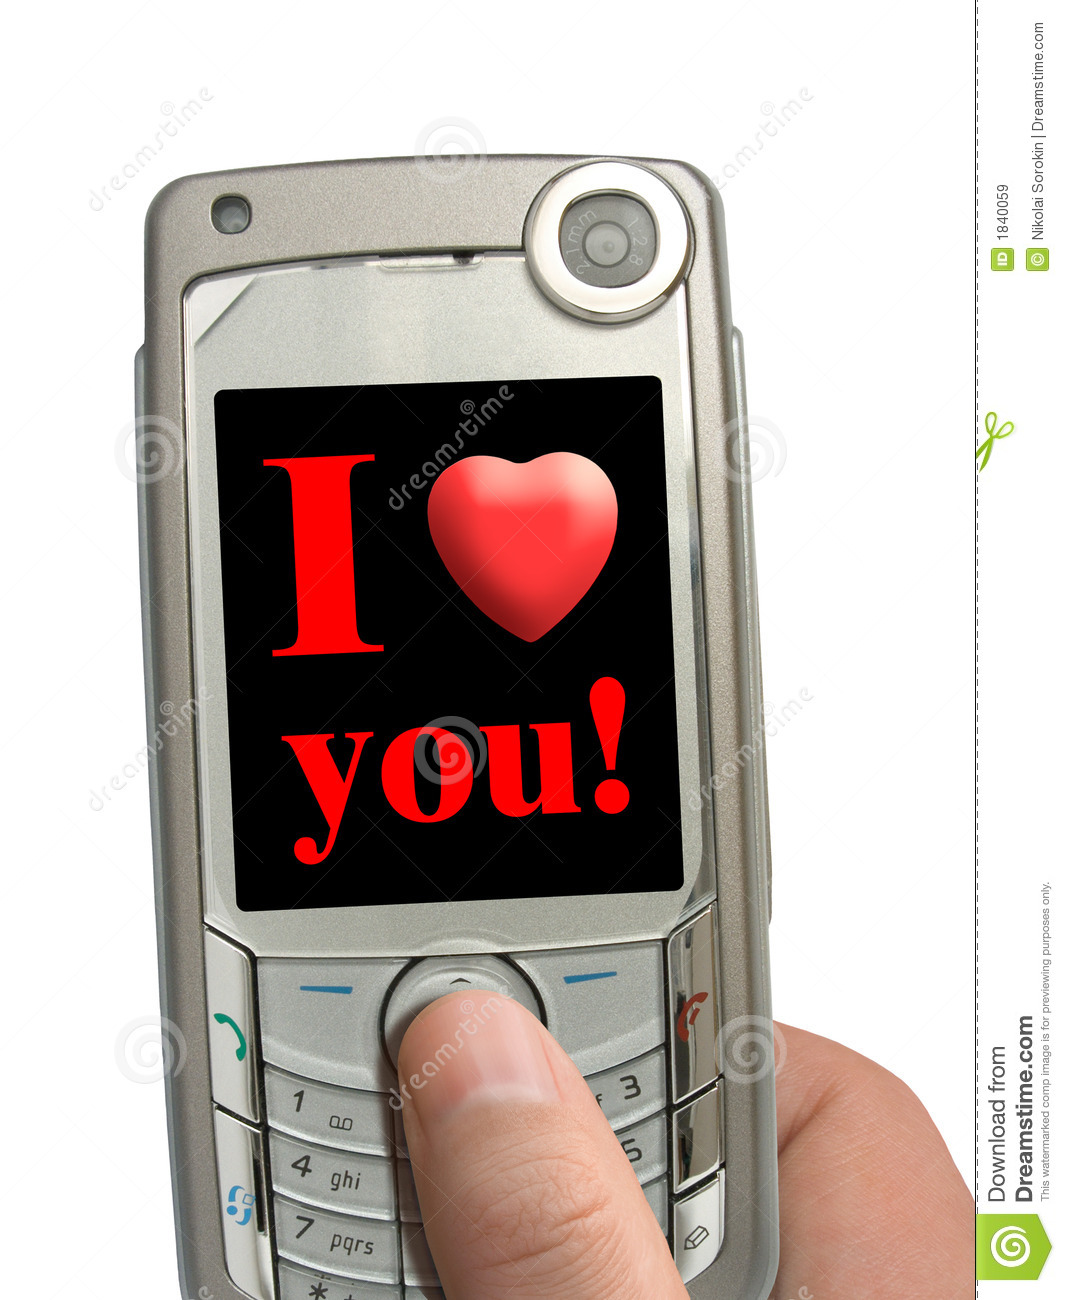 mobile phone in hand i love you on display stock image On for you mobel